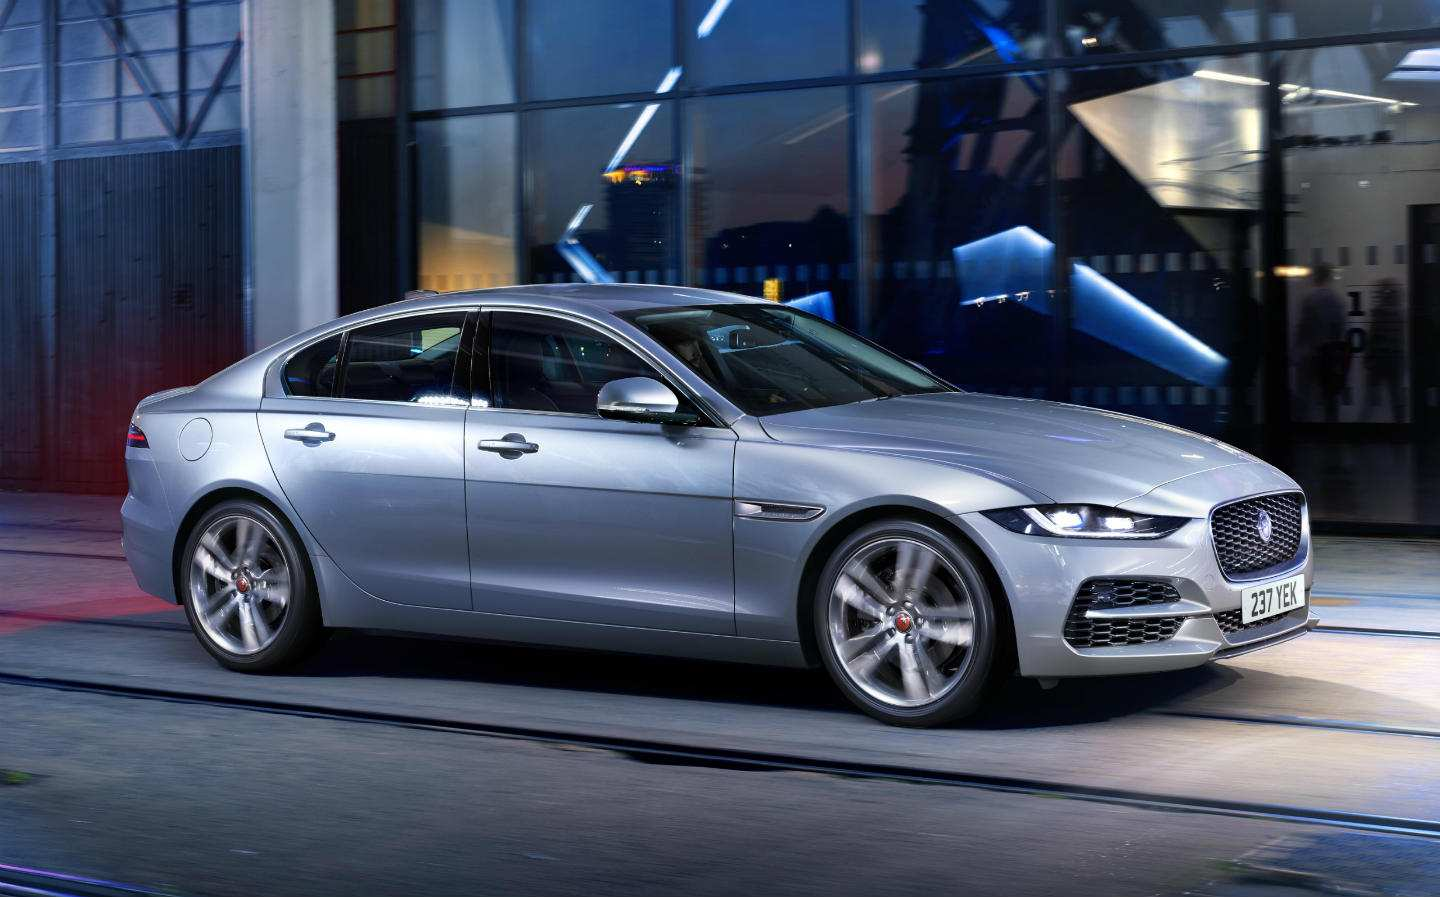 32 Best Review New Xe Jaguar 2019 First Drive Price Performance And Review Release Date by New Xe Jaguar 2019 First Drive Price Performance And Review